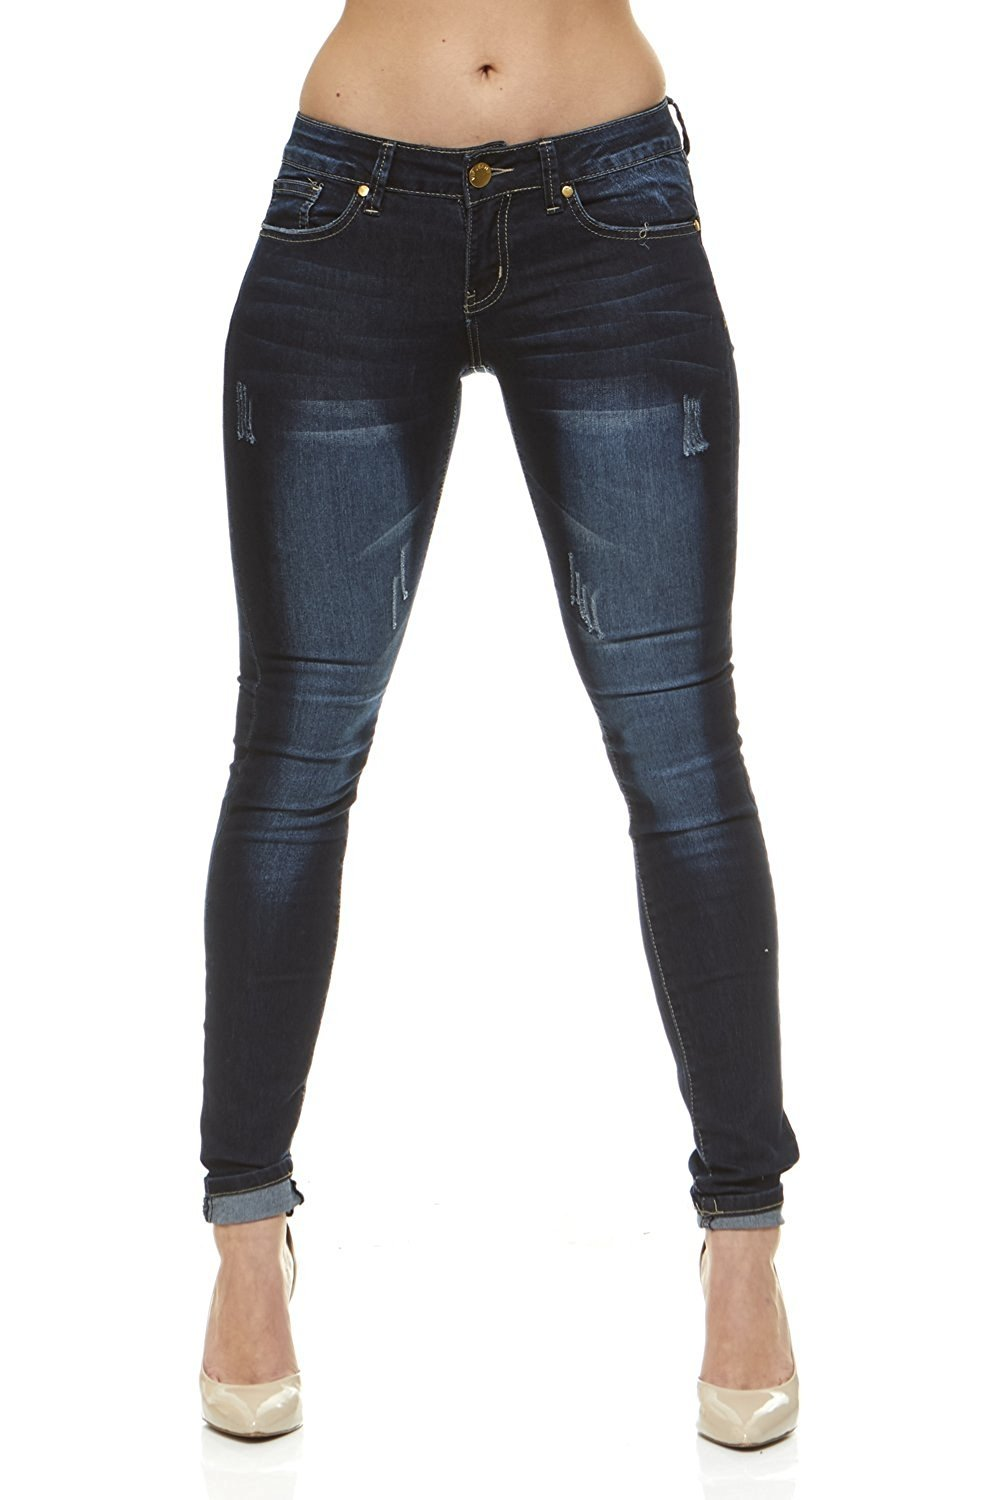 Classic Skinny Jeans for Women Slim Fit Stretch Stone Washed Jeans